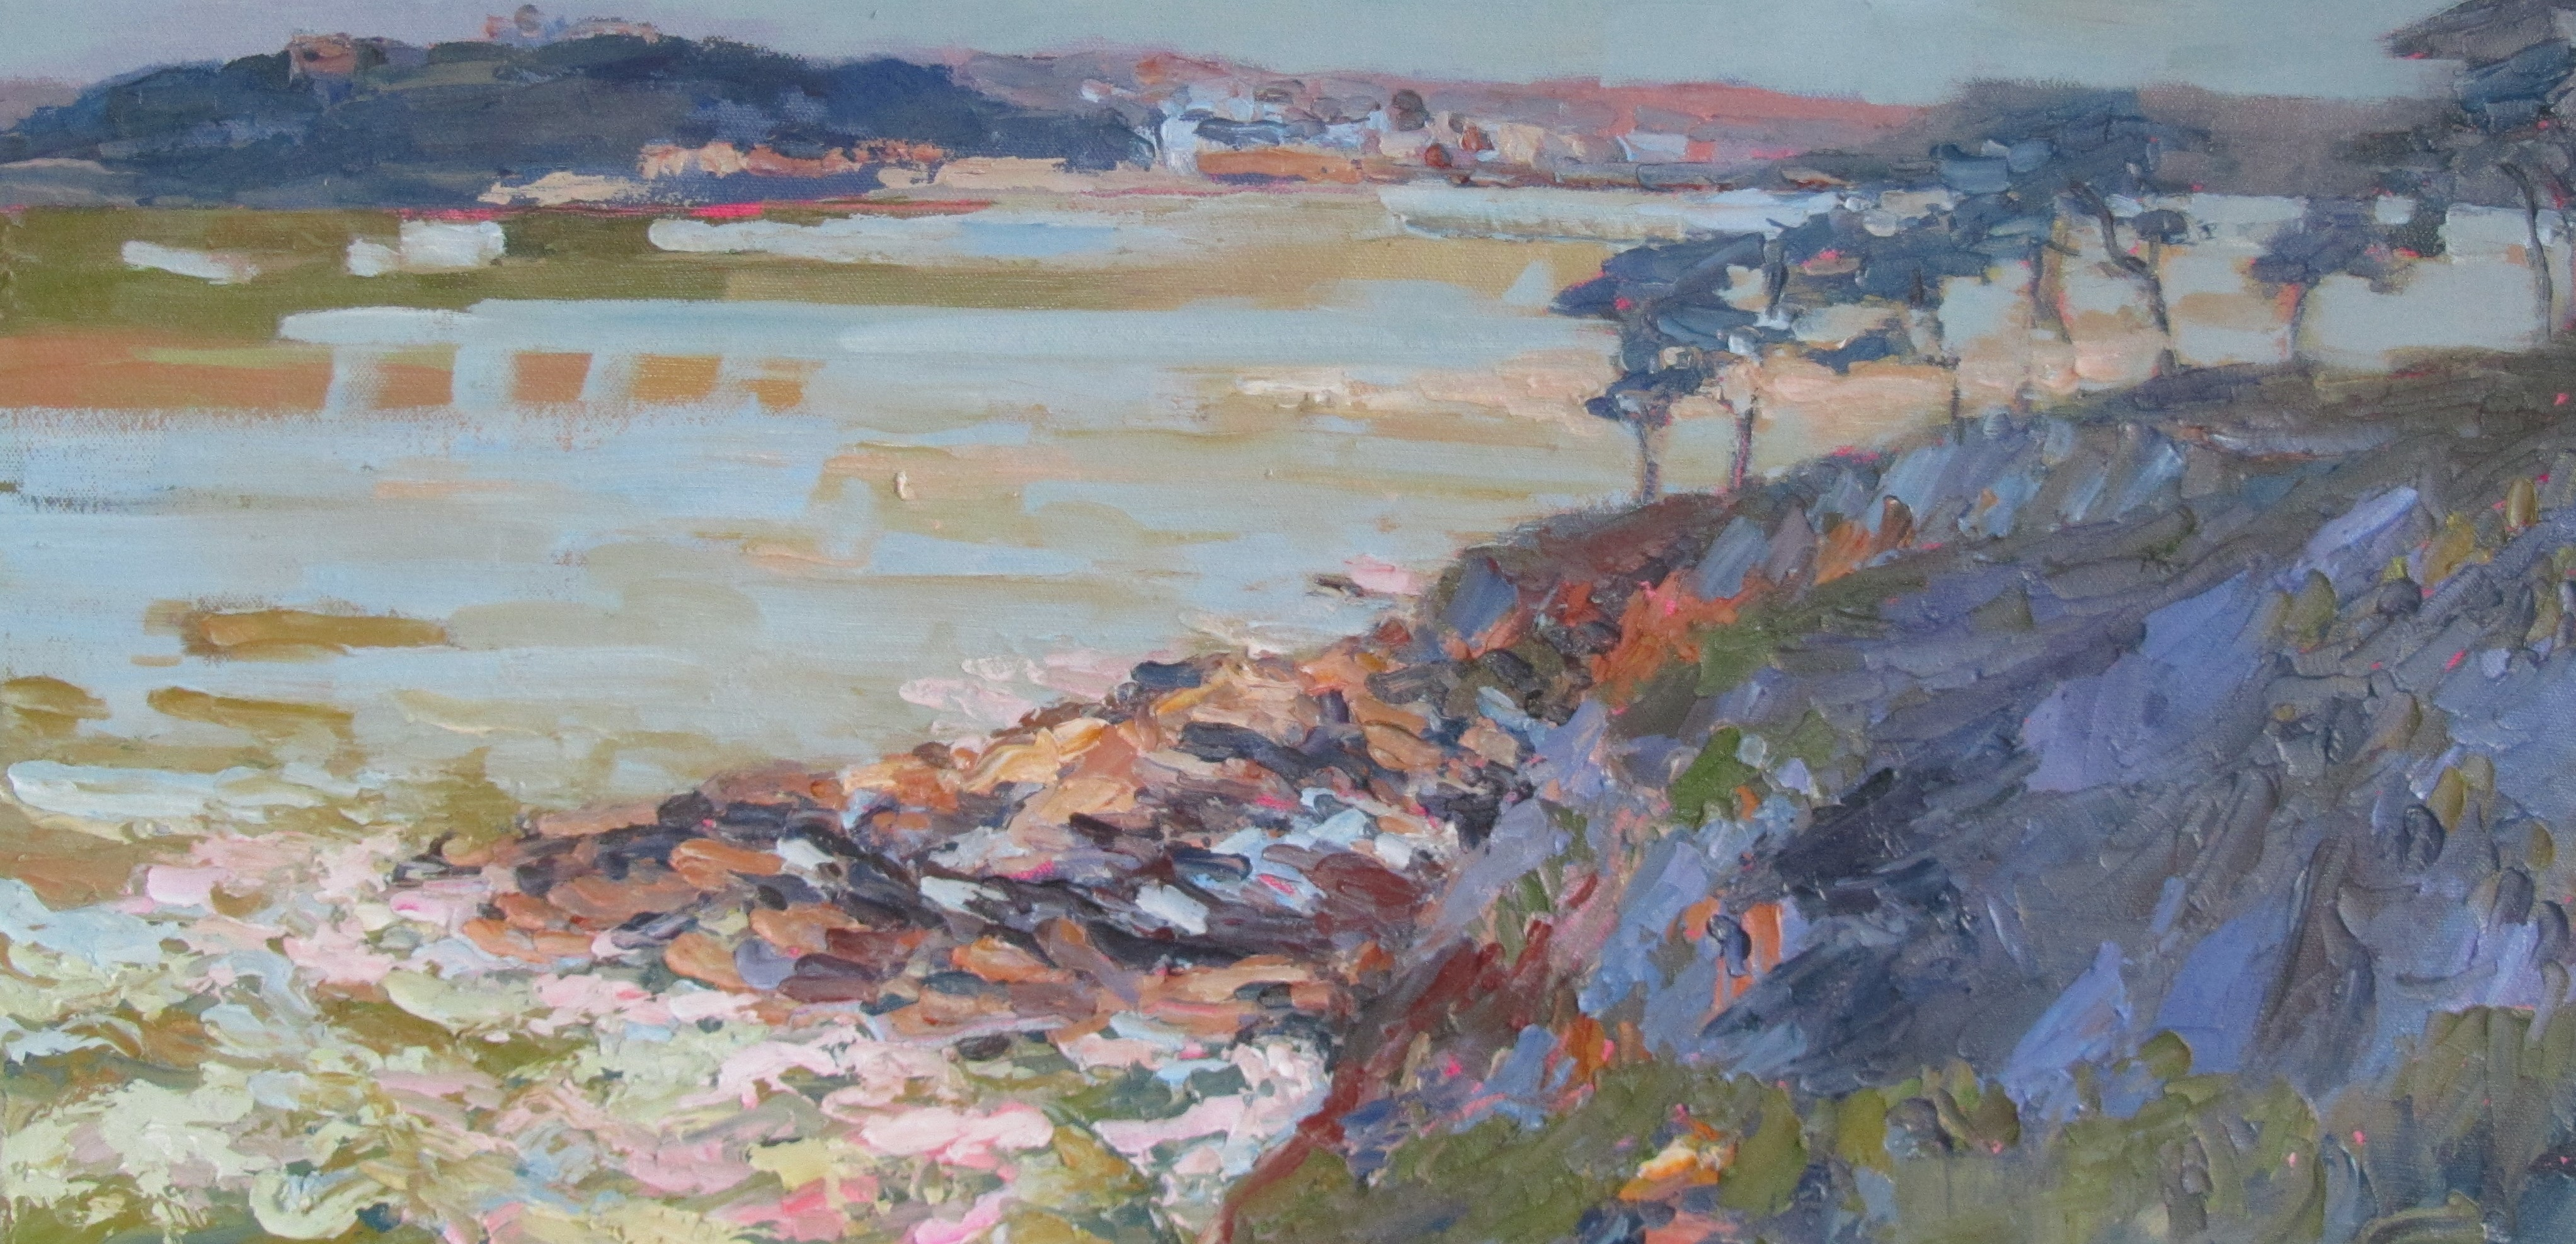 On the coast path - 30cm x 60cm